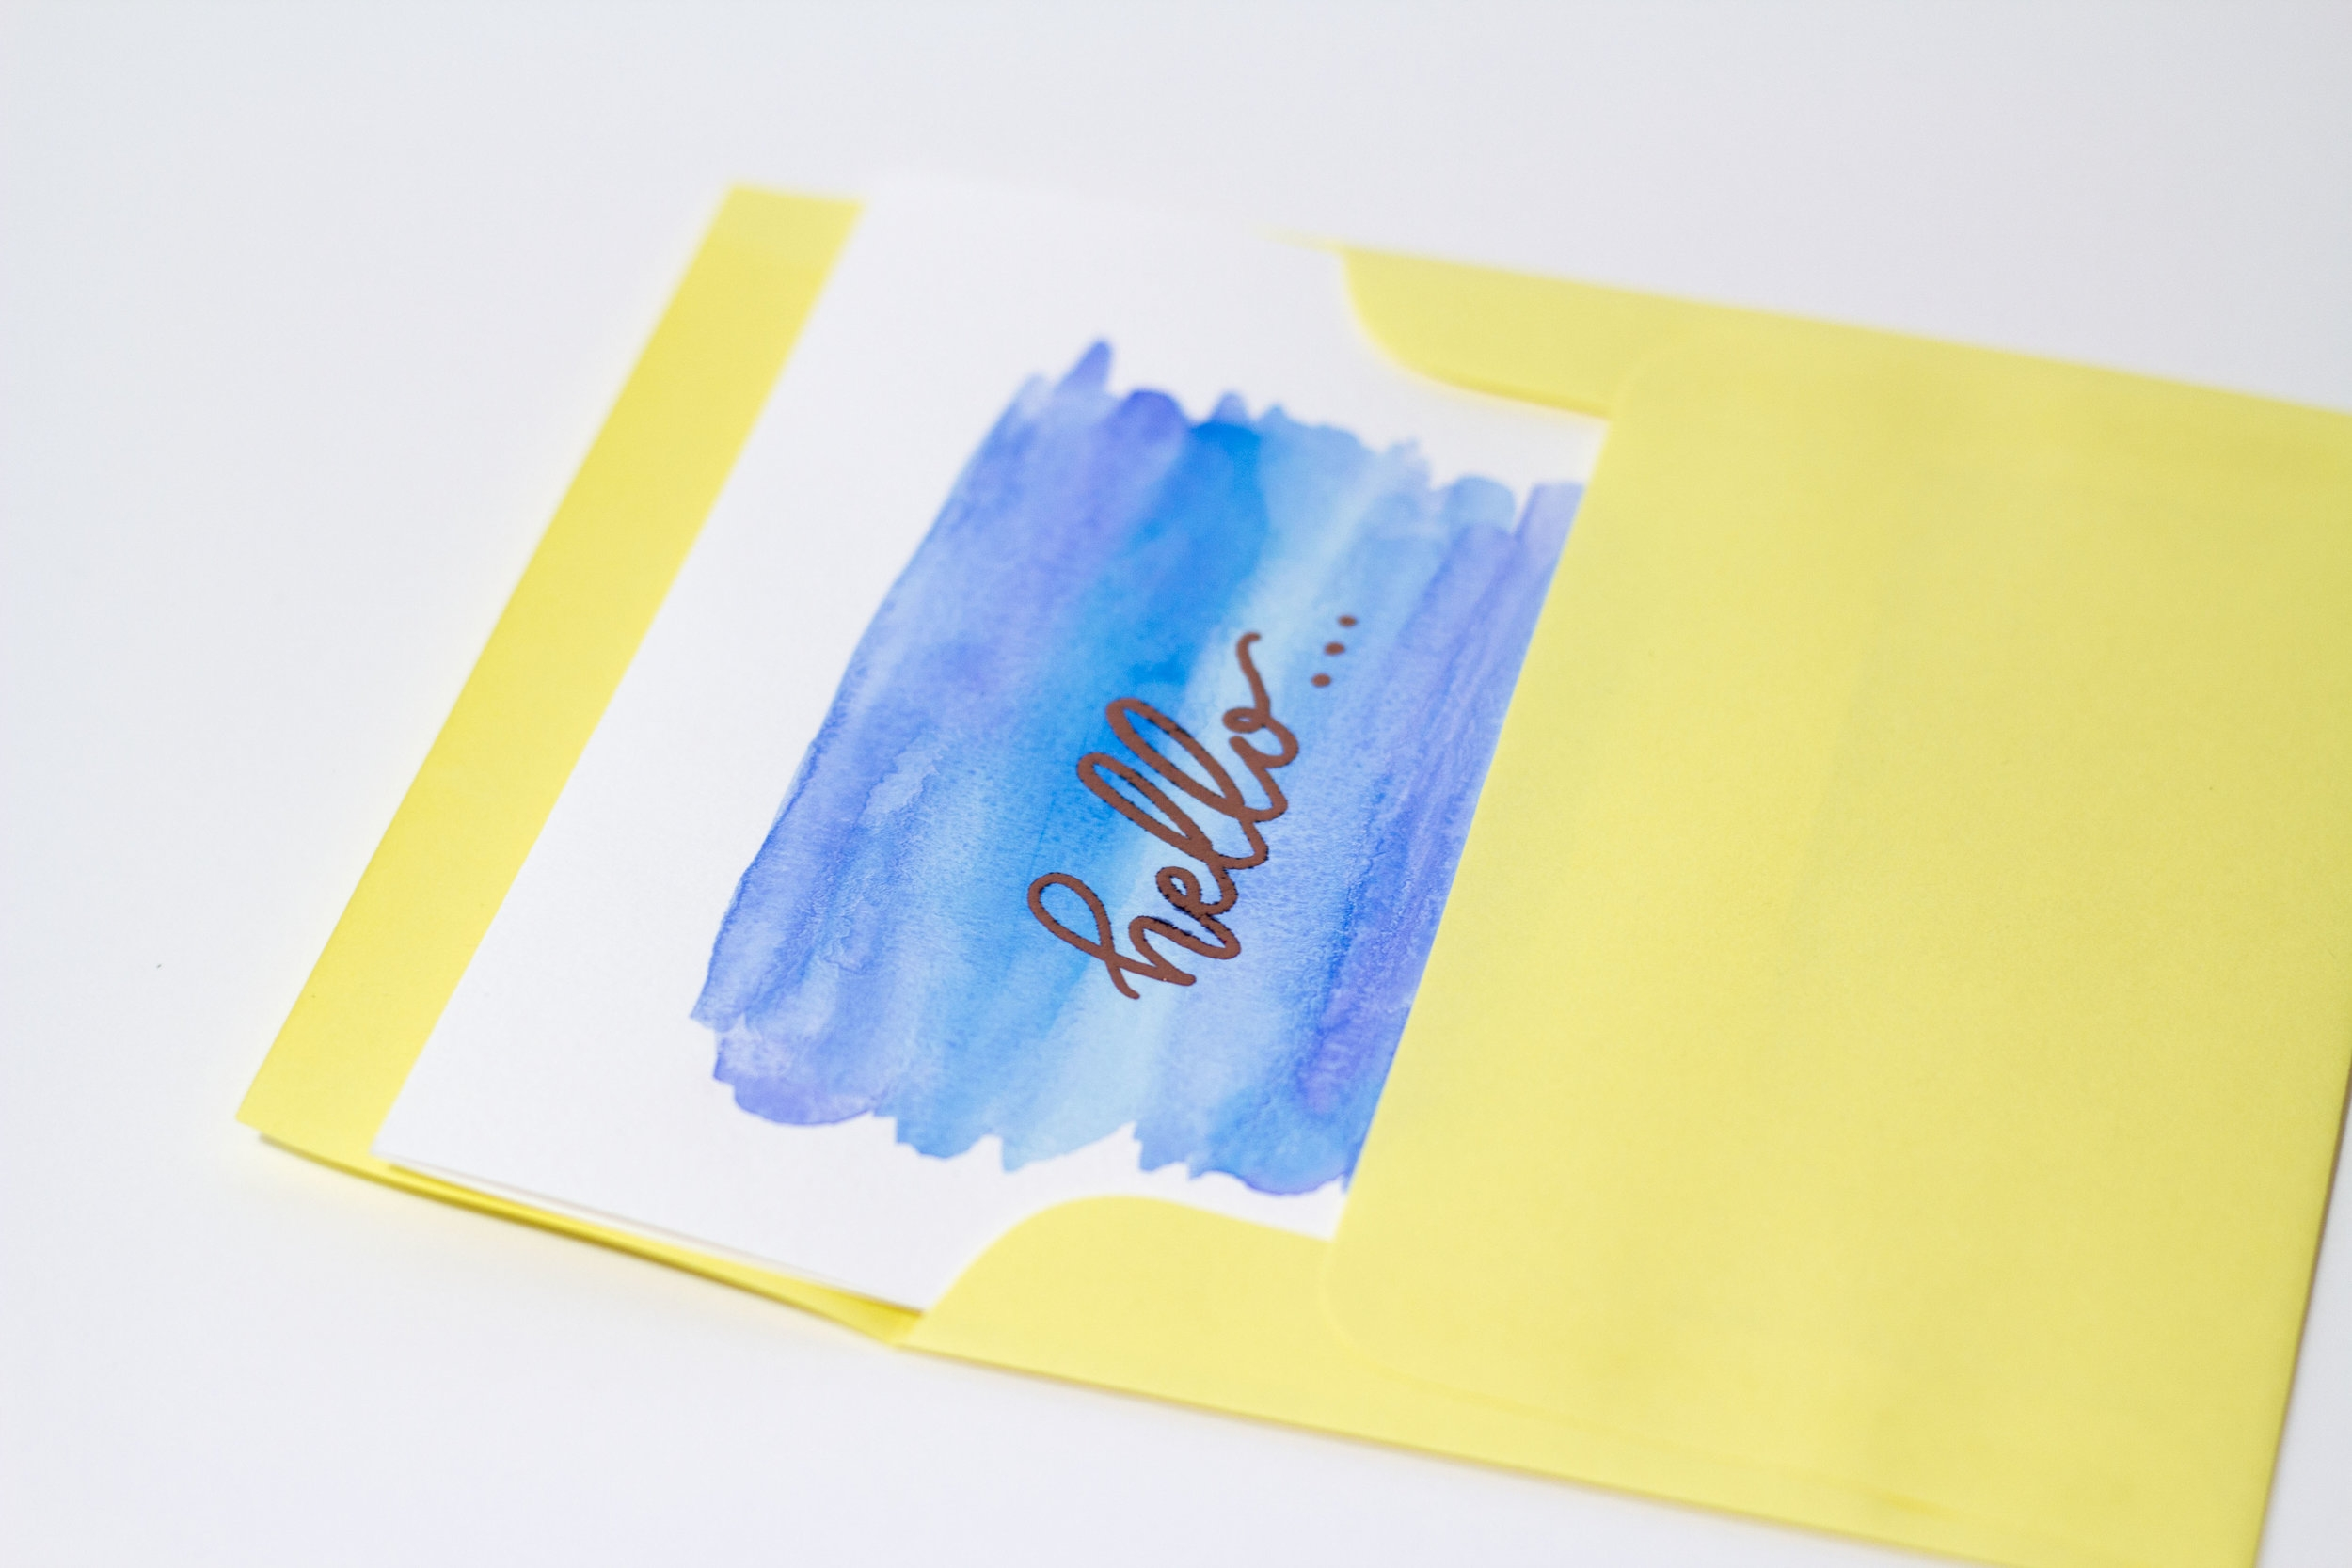 Purchase original artwork, handmade cards, or request custom digital work. - Feel proud about supporting an artist and your local post office!